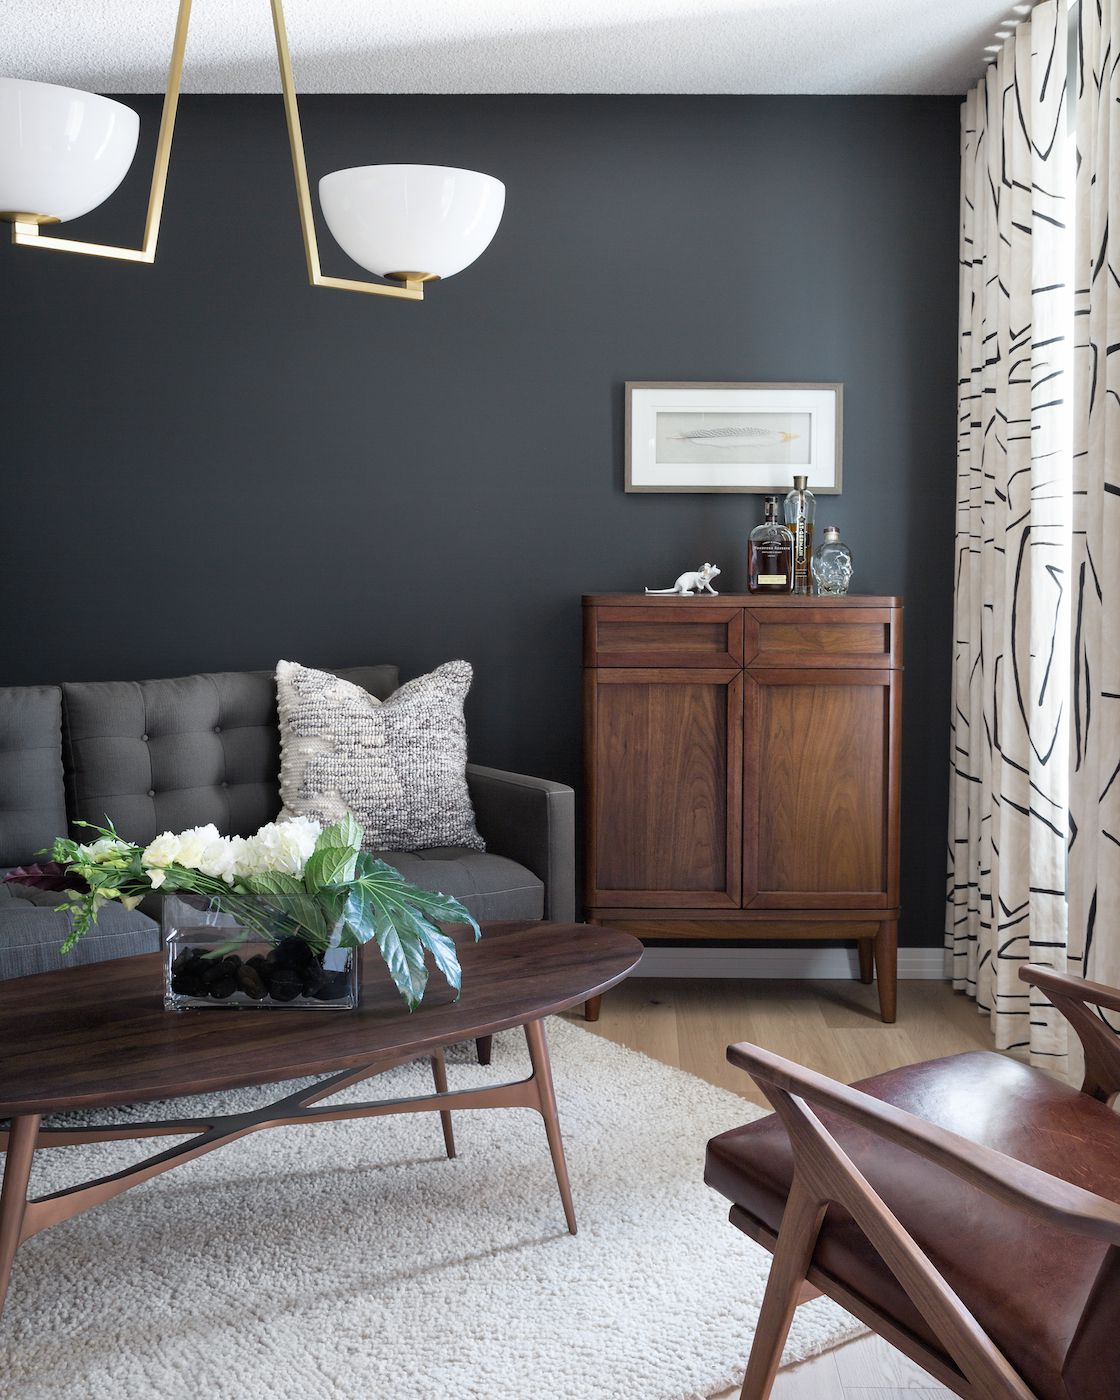 This is How to Choose the Right Paint Finish for Your Space Every Time